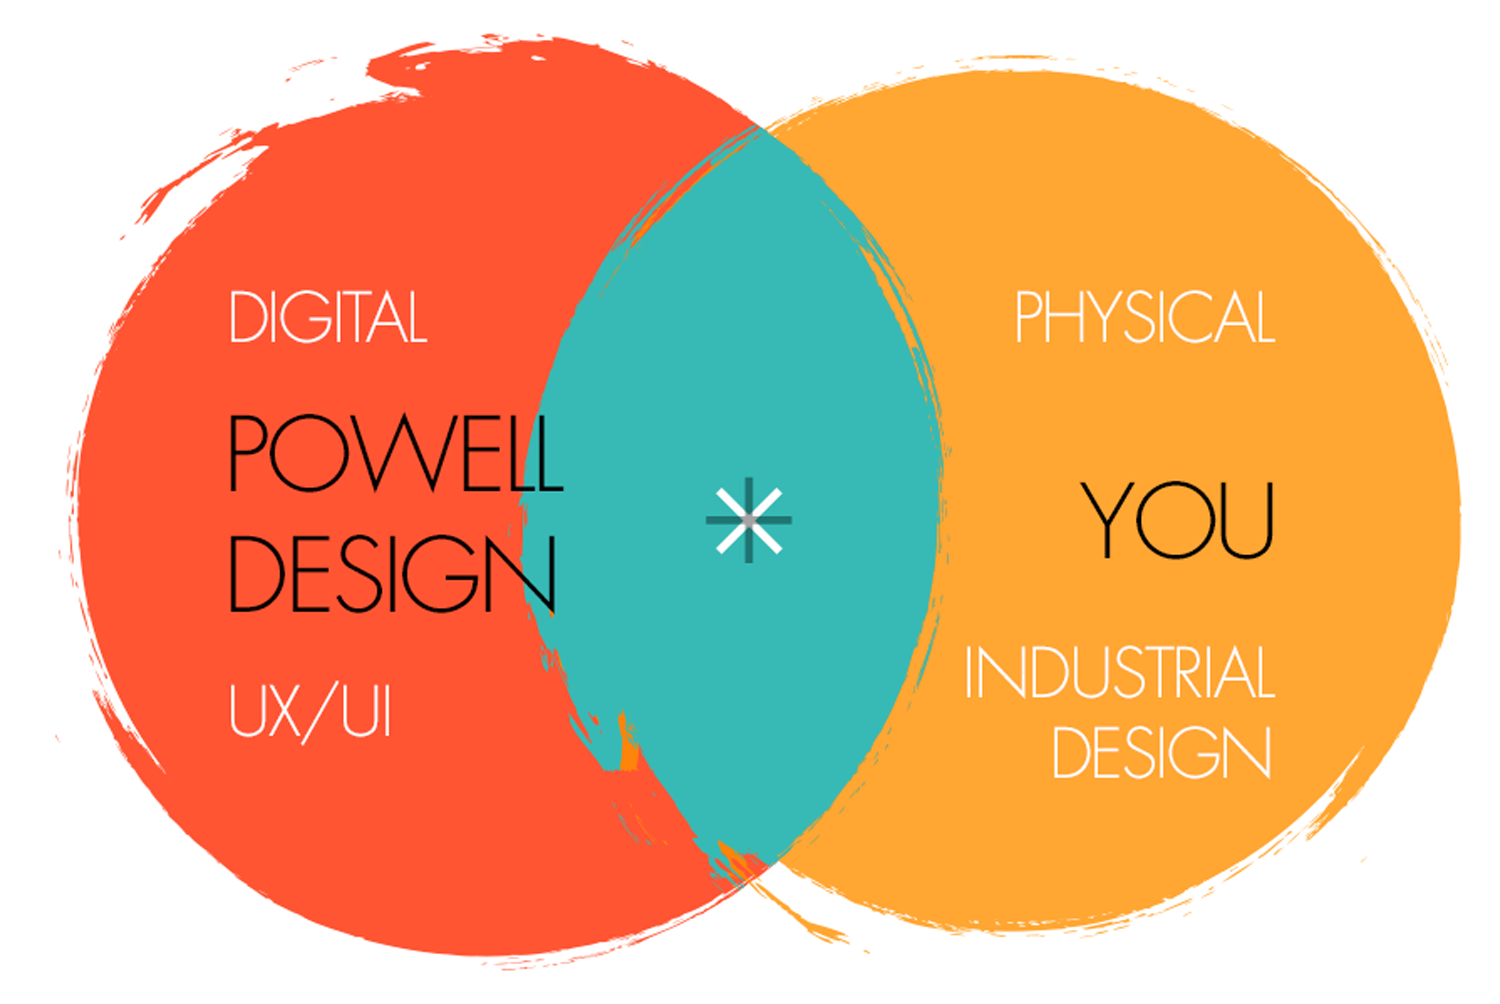 POWELL DESIGN + YOU